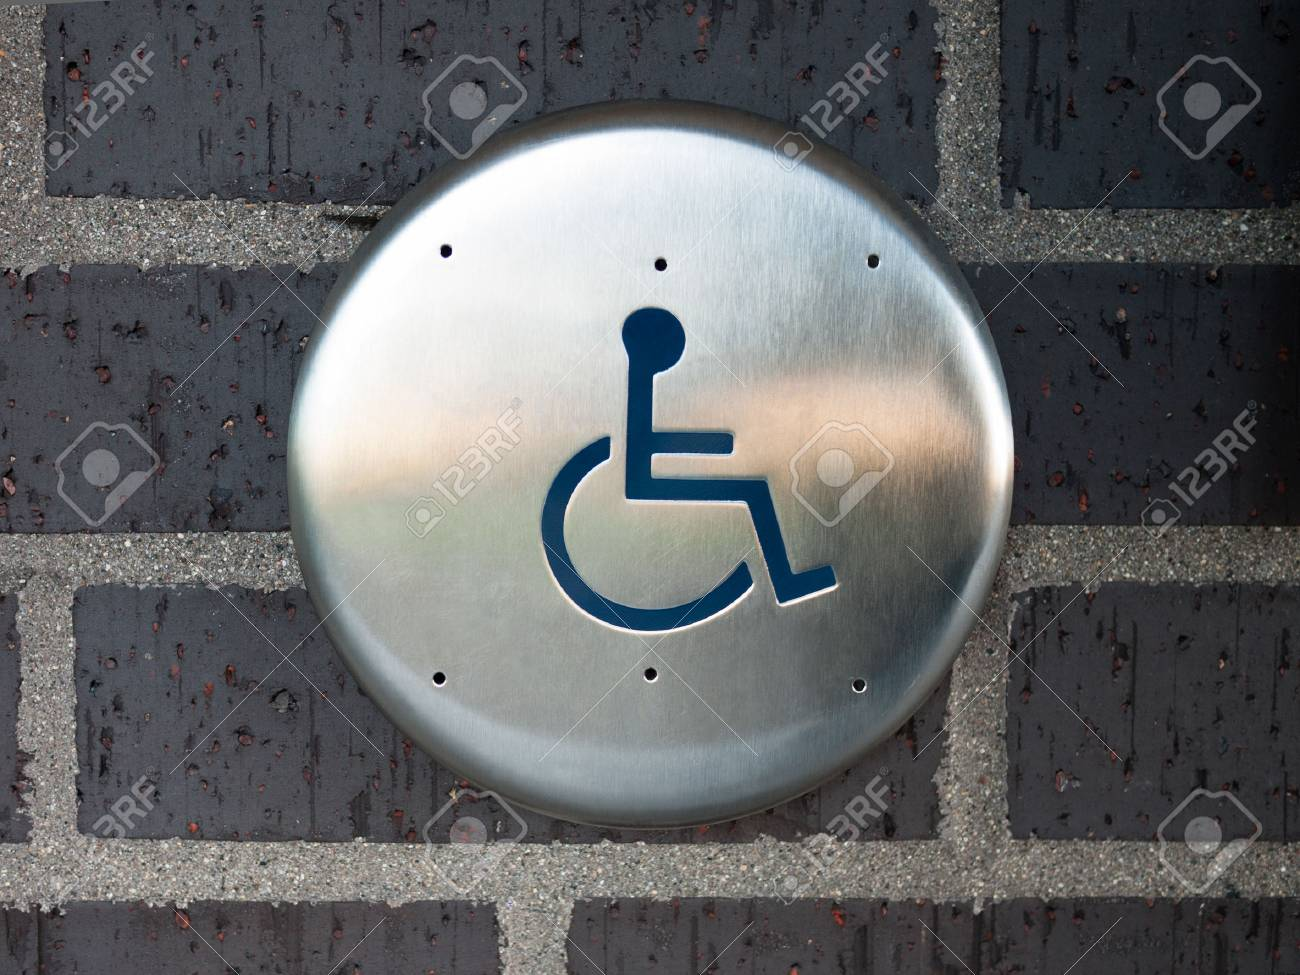 Handicapped automatic door opener button switch on a brick wall Stock Photo - 77879007 & Handicapped Automatic Door Opener Button Switch On A Brick Wall ...